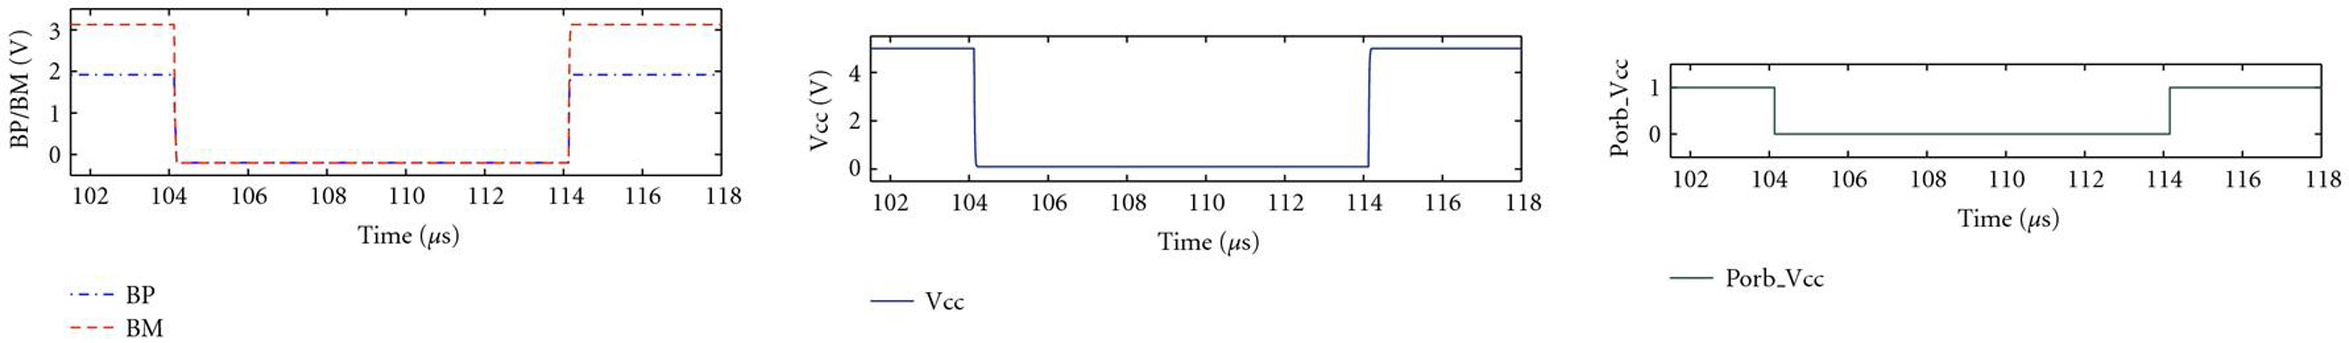 http://static-content.springer.com/image/art%3A10.1155%2F2010%2F726286/MediaObjects/13639_2009_Article_225_Fig9_HTML.jpg